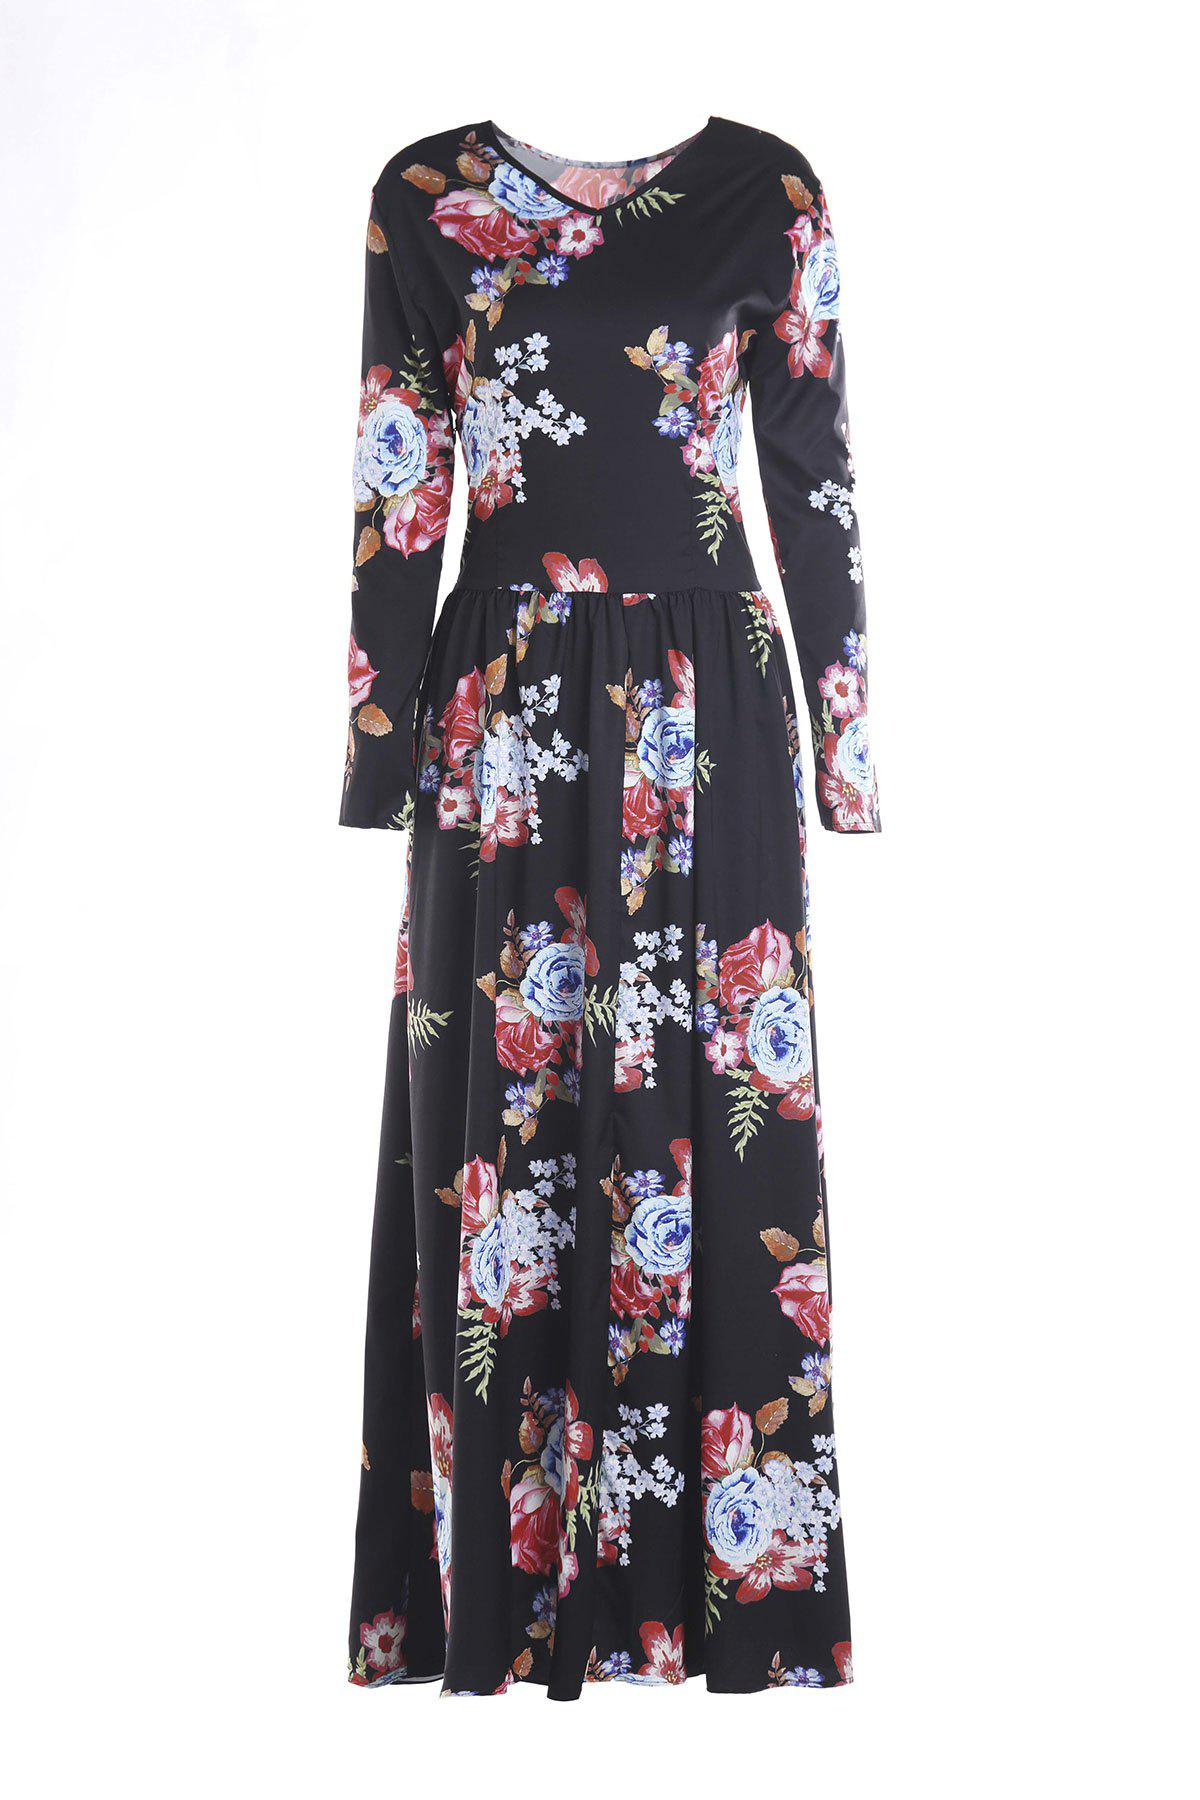 Long Sleeve Maxi Floral Print Dress - BLACK L